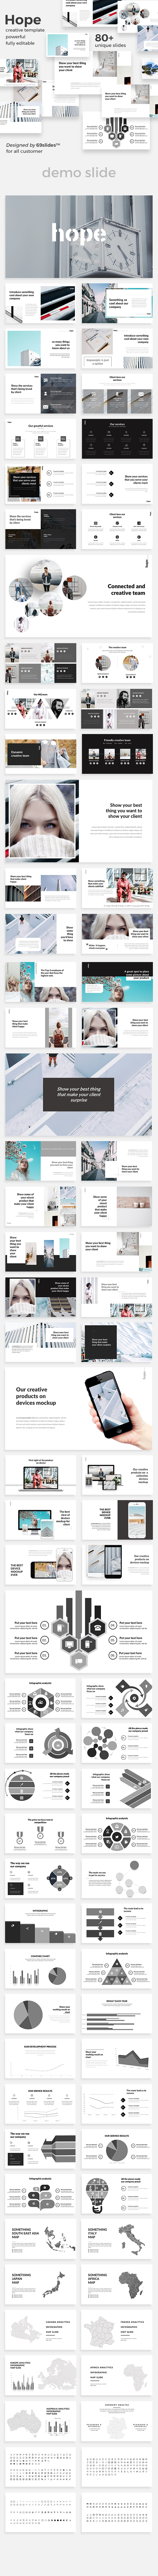 Hope Creative Google Slide Template - Google Slides Presentation Templates